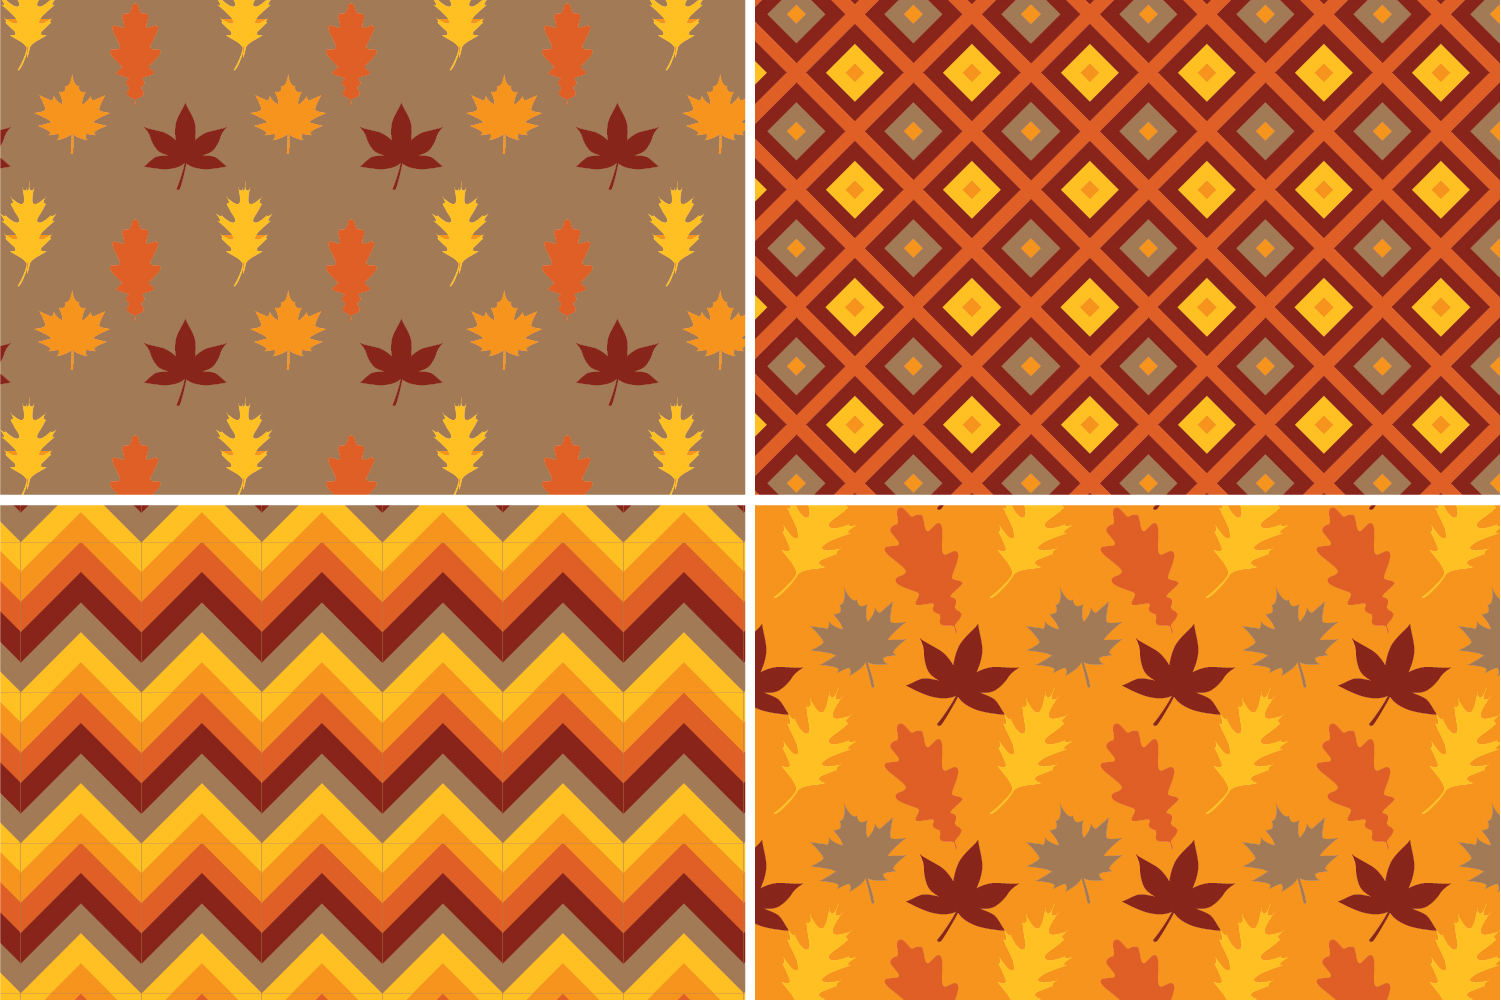 8 Seamless Autumn Patterns Set 1 example image 3